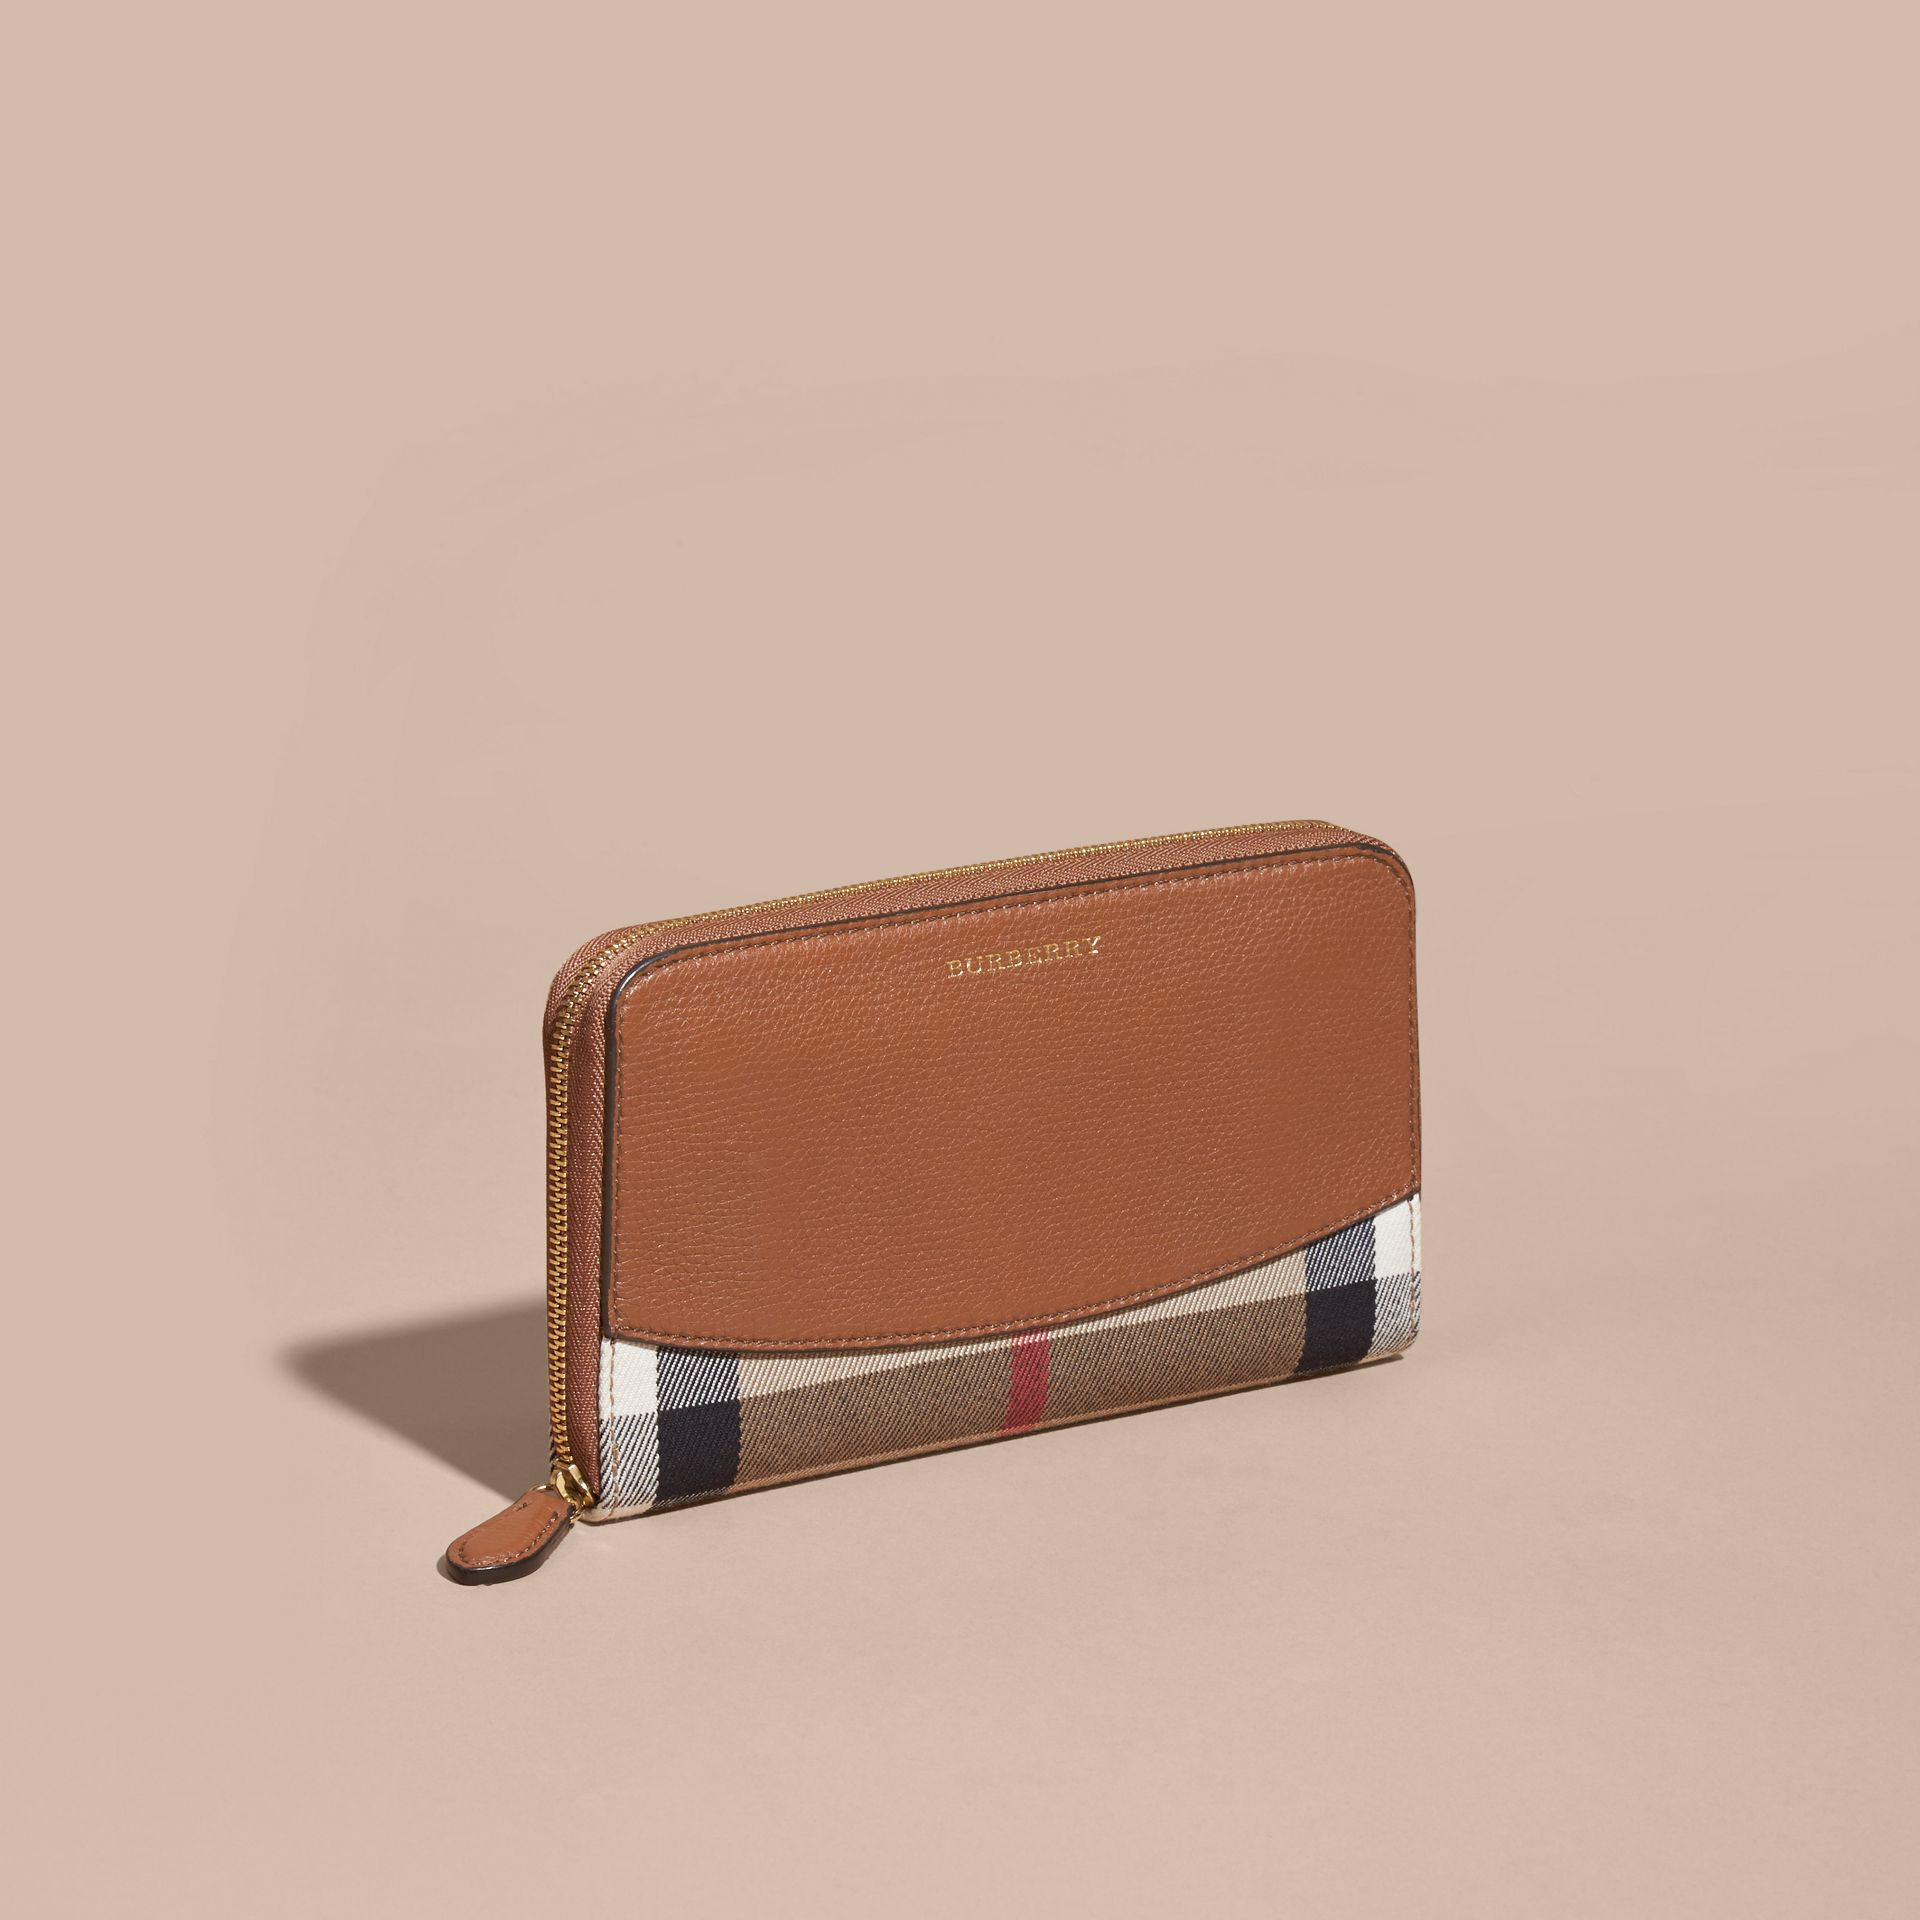 House Check and Leather Ziparound Wallet in Brown Ochre - Women | Burberry Singapore - gallery image 6